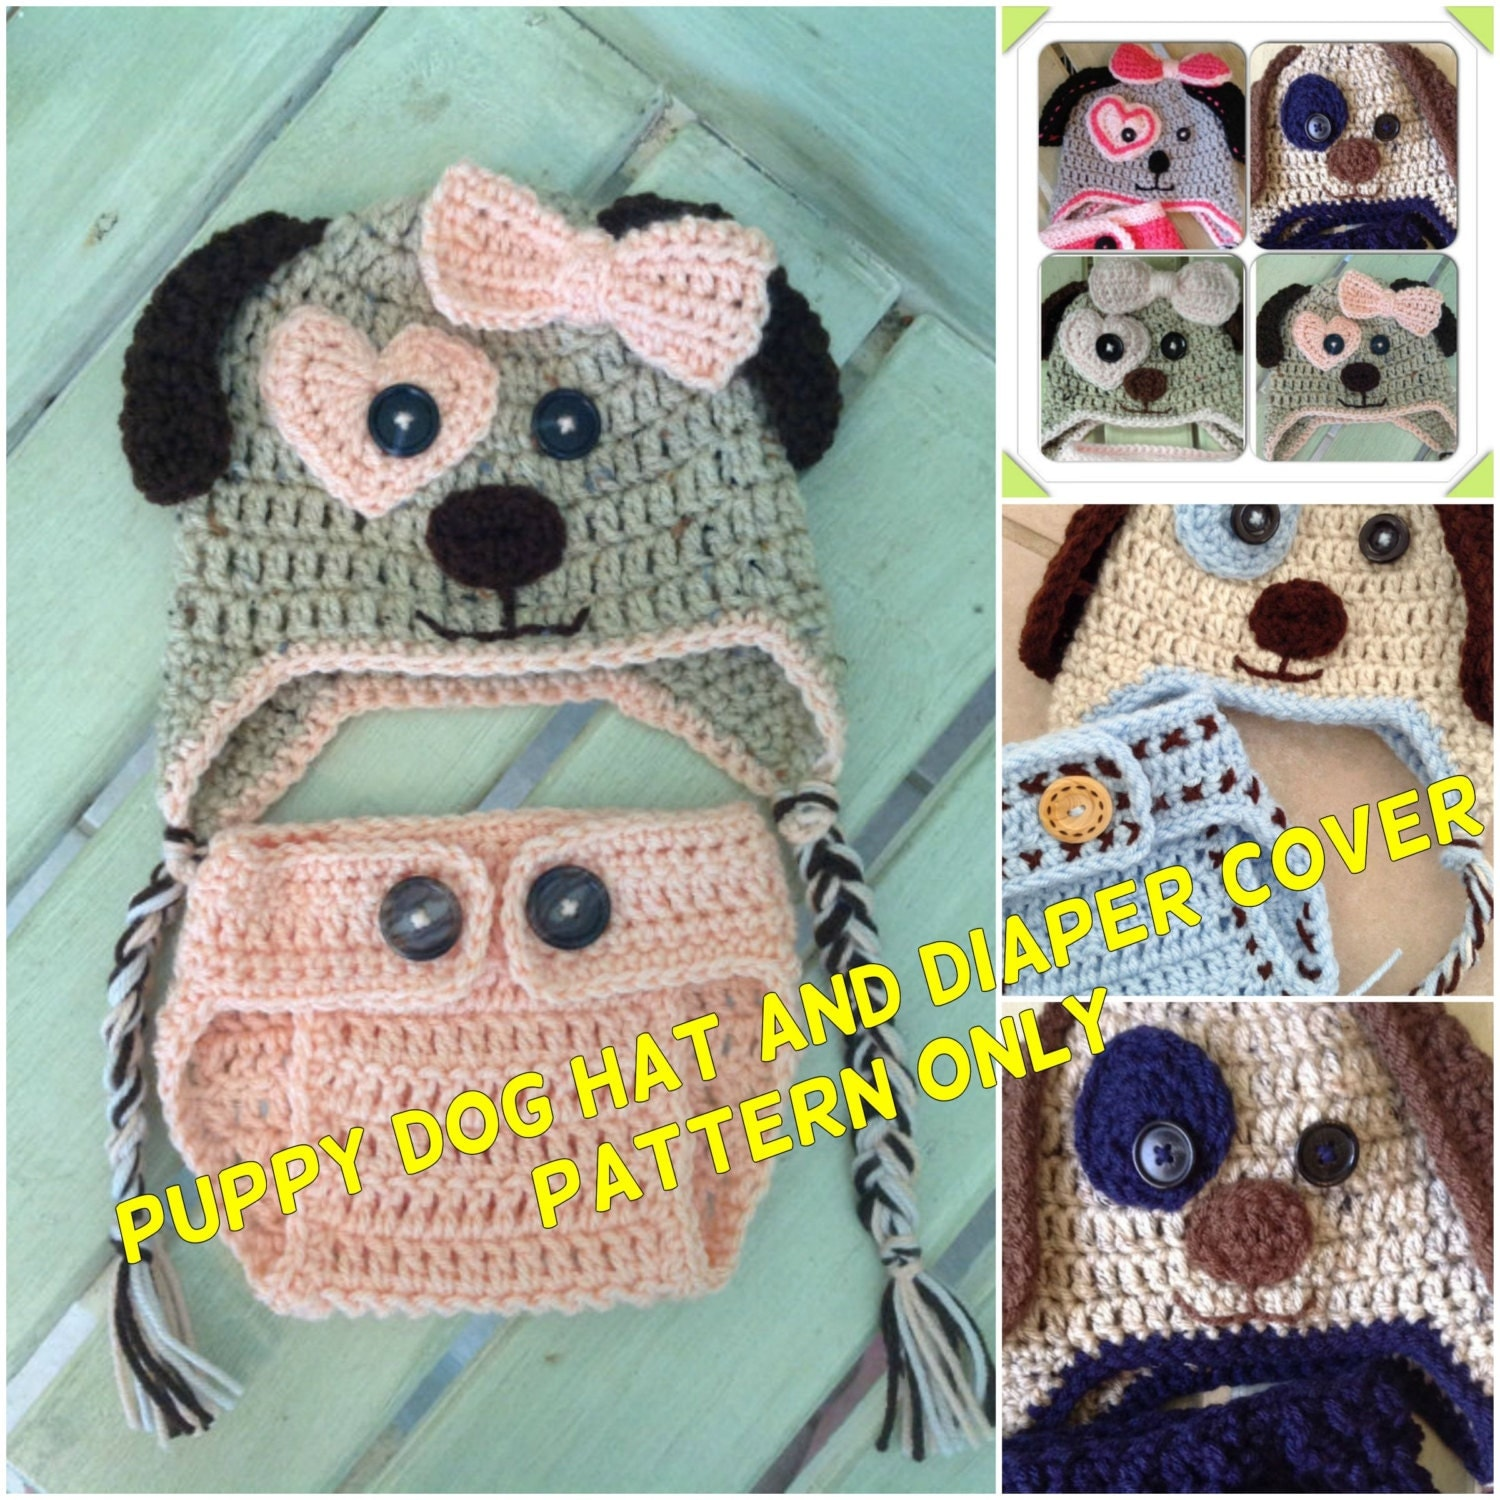 Crochet Dog Hat And Diaper Cover Pattern : Puppy Dog Hat and Diaper Cover Pattern Only Crochet Hat and